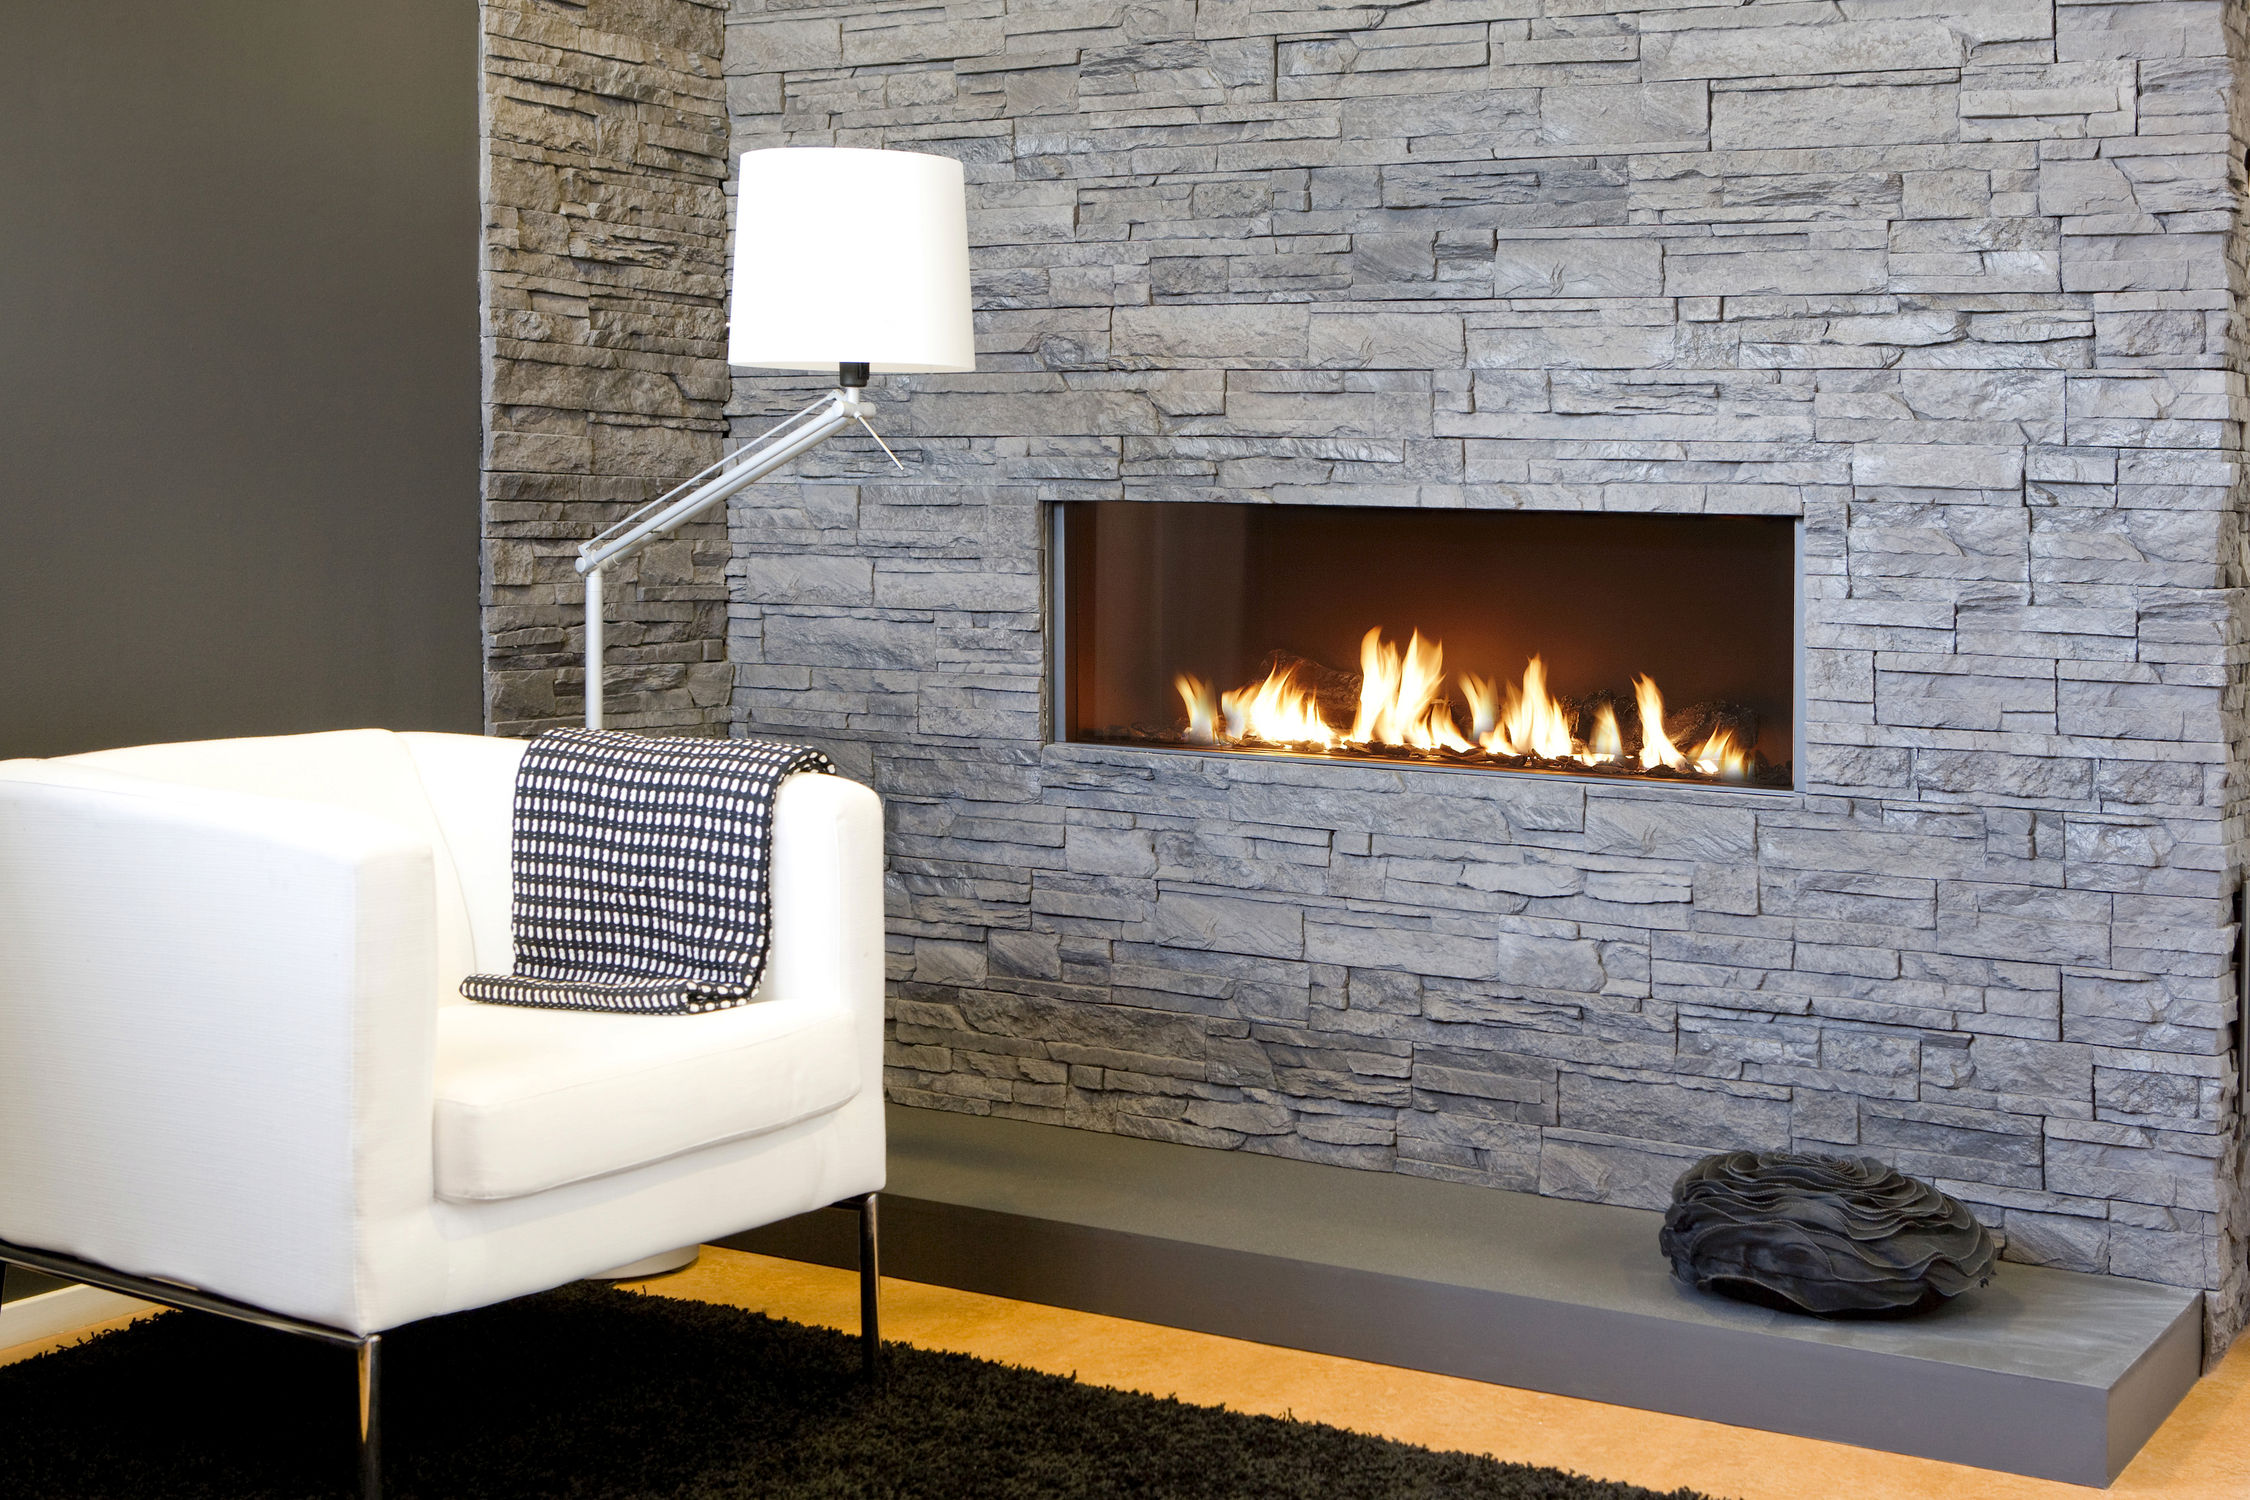 built in wall electric fireplace fireplace design ideas - Electric Fireplace Design Ideas